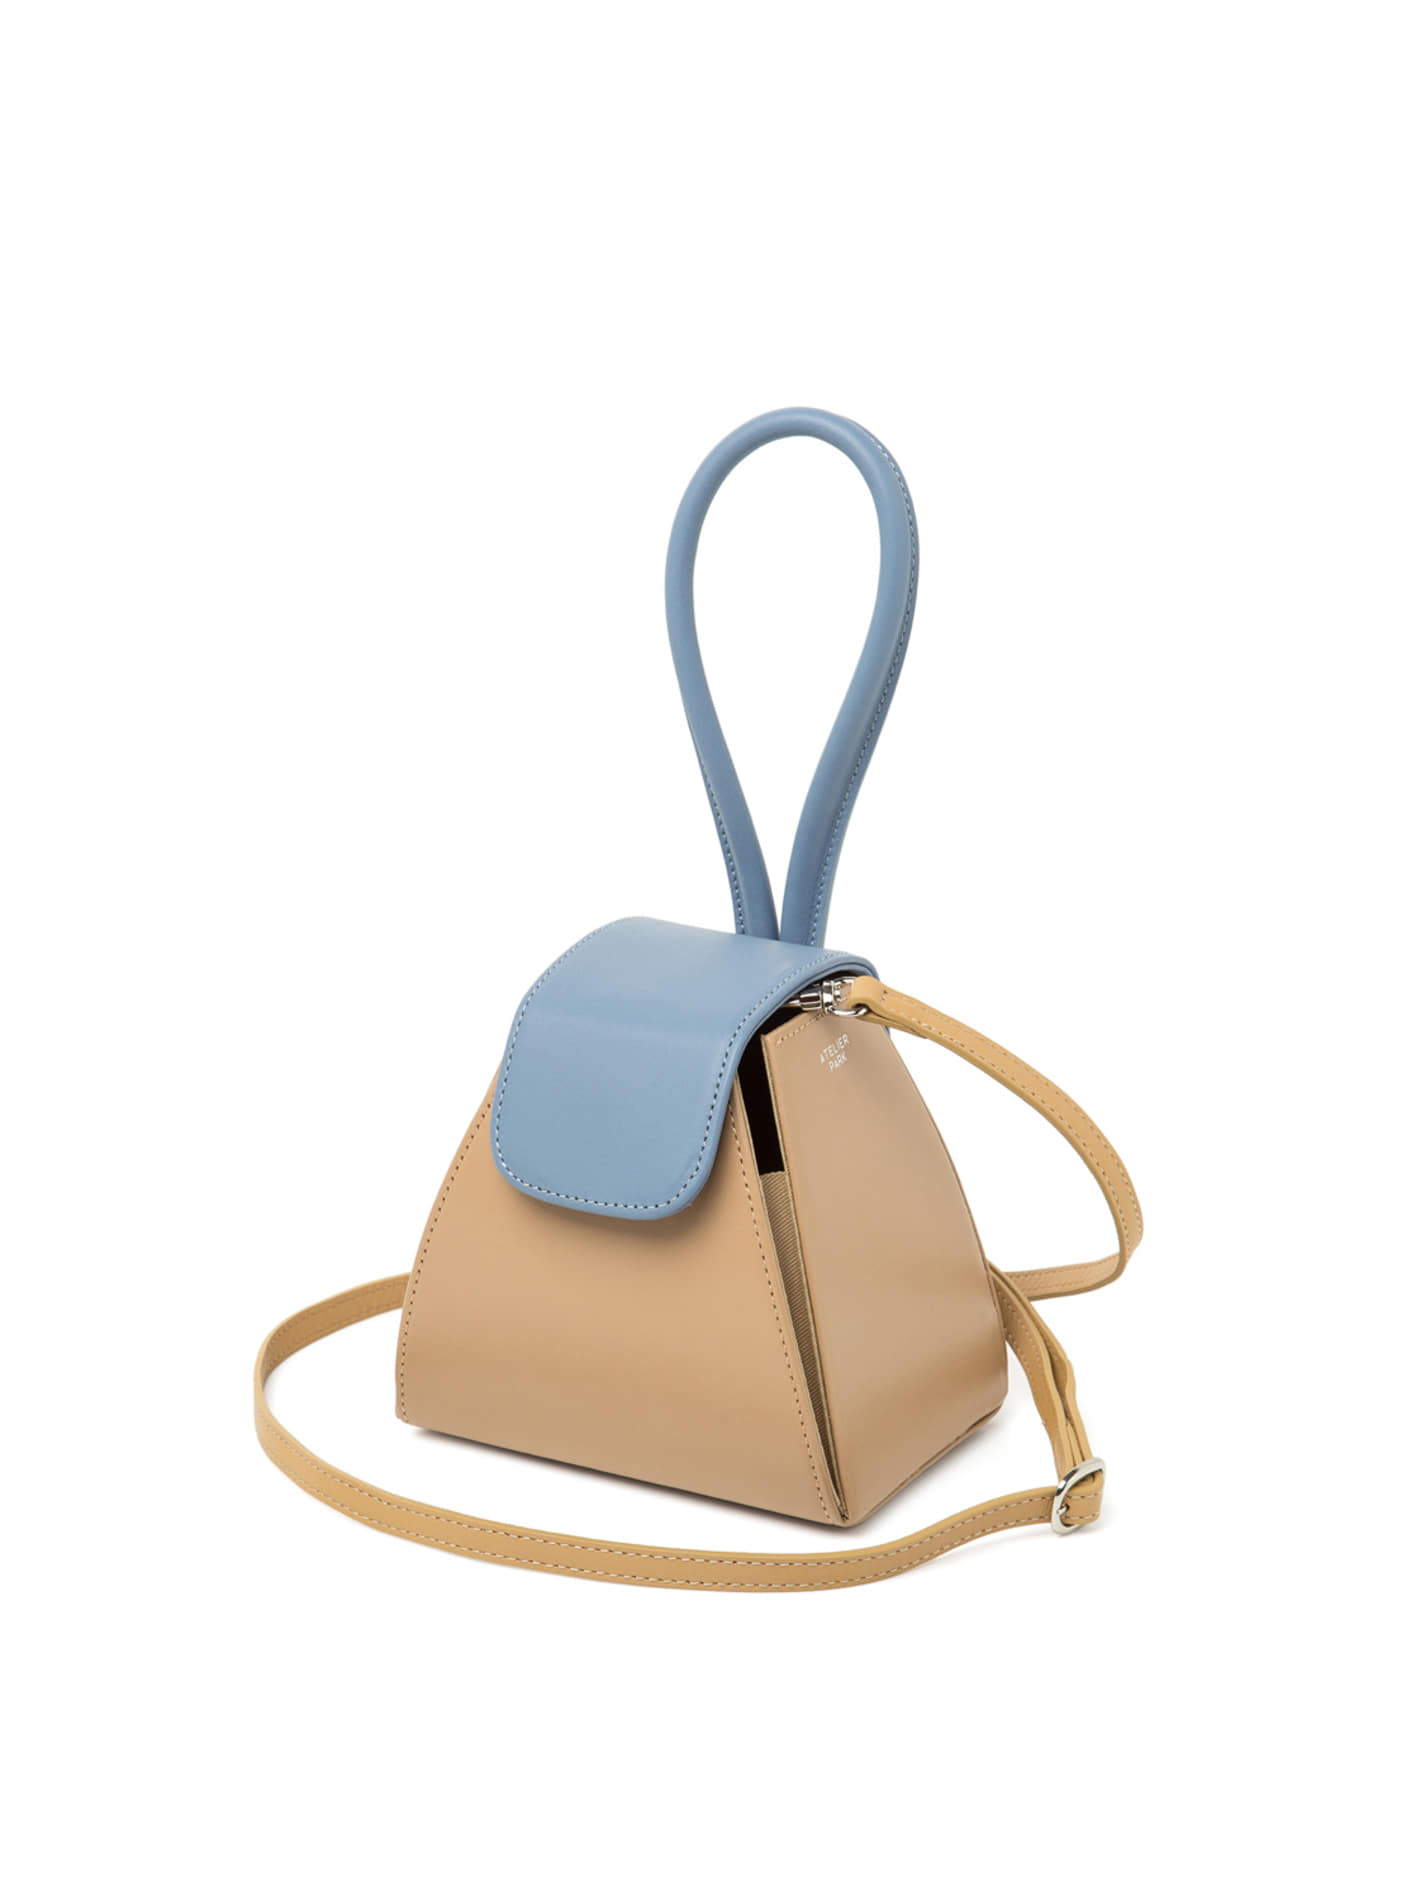 COLOR BLOCK HANDLE BAG -BEIGE / SKY BLUE ( 레더스트랩 포함 )